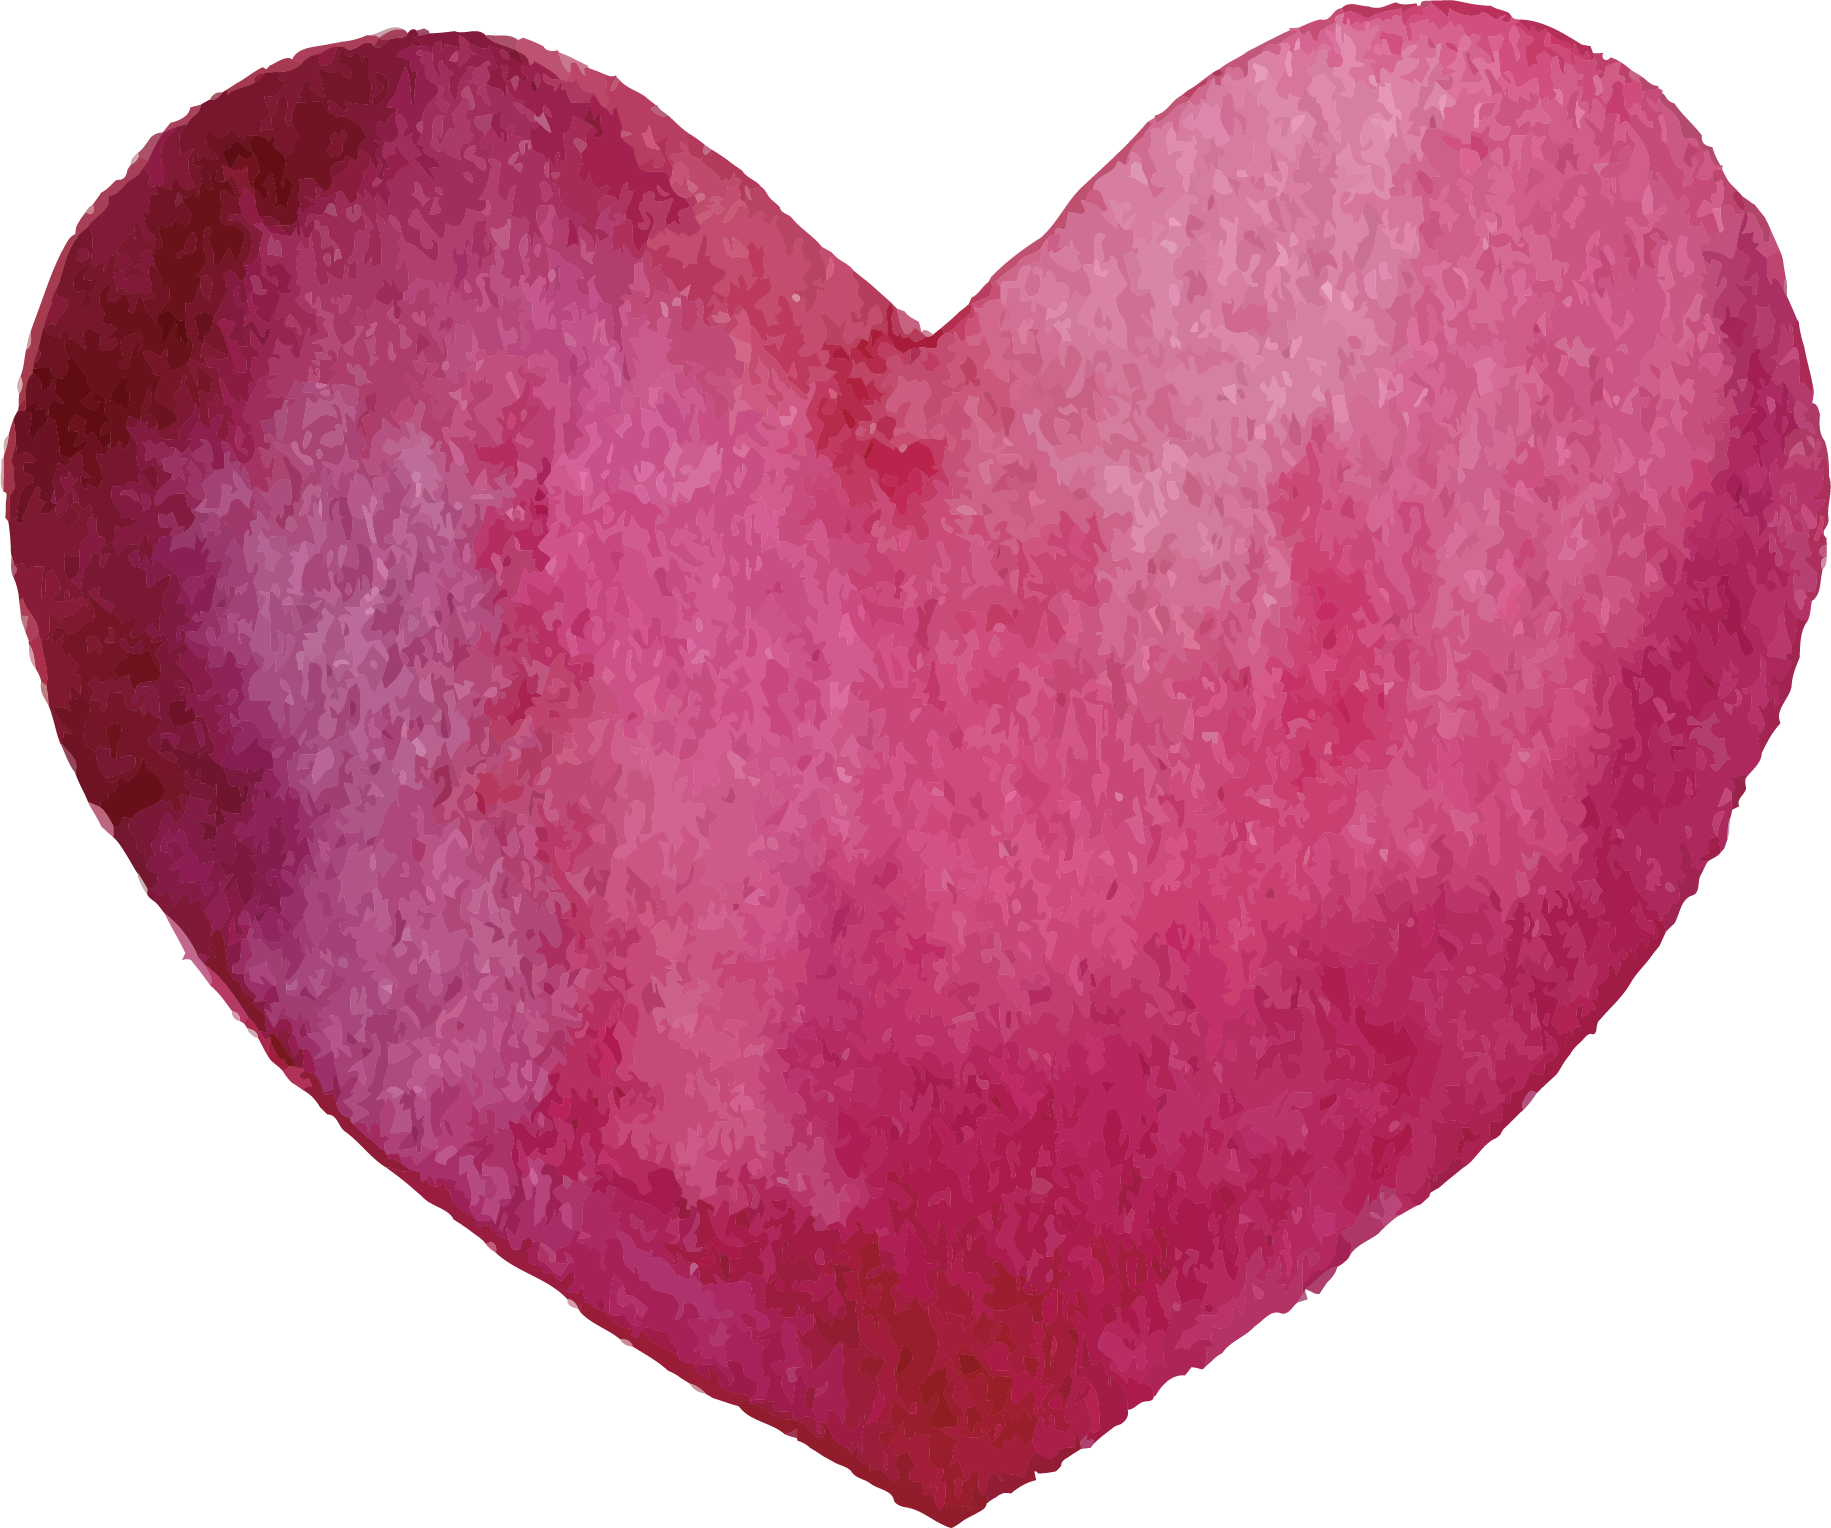 Burning heart clipart jpg royalty free stock Pink Heart Drawing at GetDrawings.com | Free for personal use Pink ... jpg royalty free stock